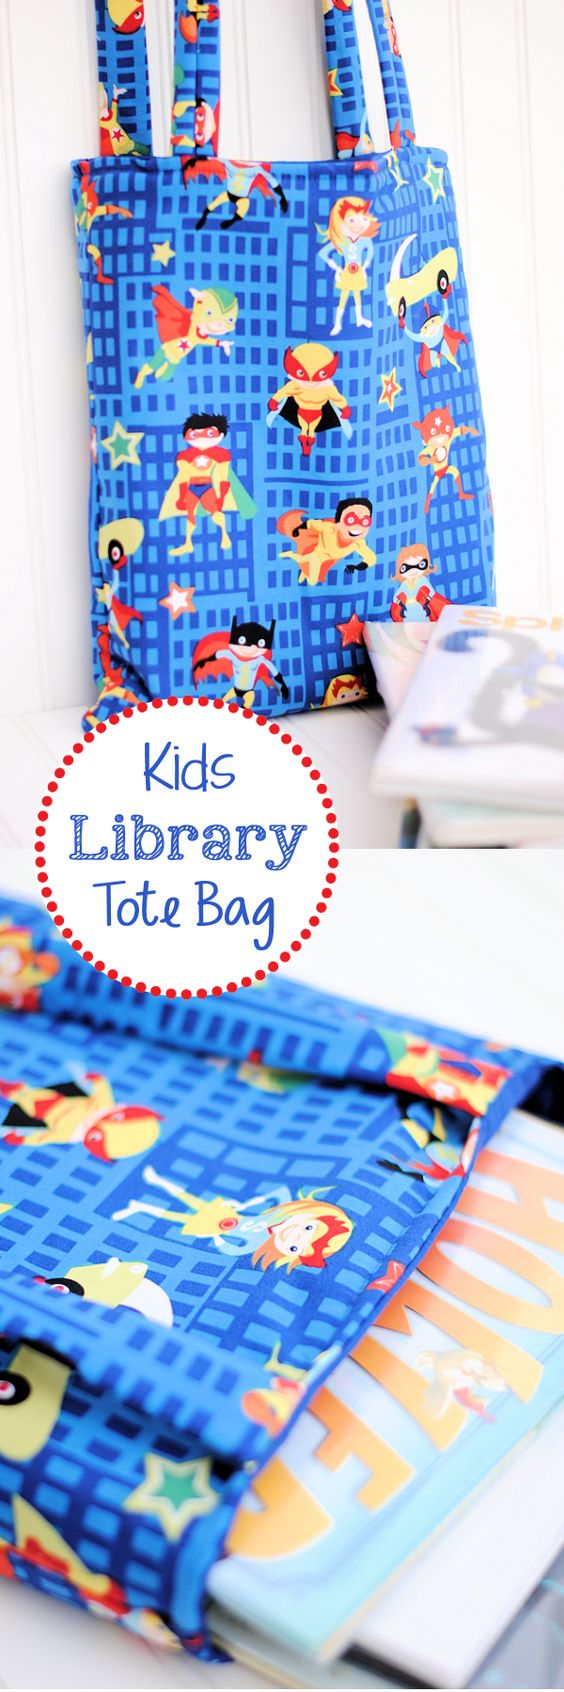 DIY Kids Library Tote Bag